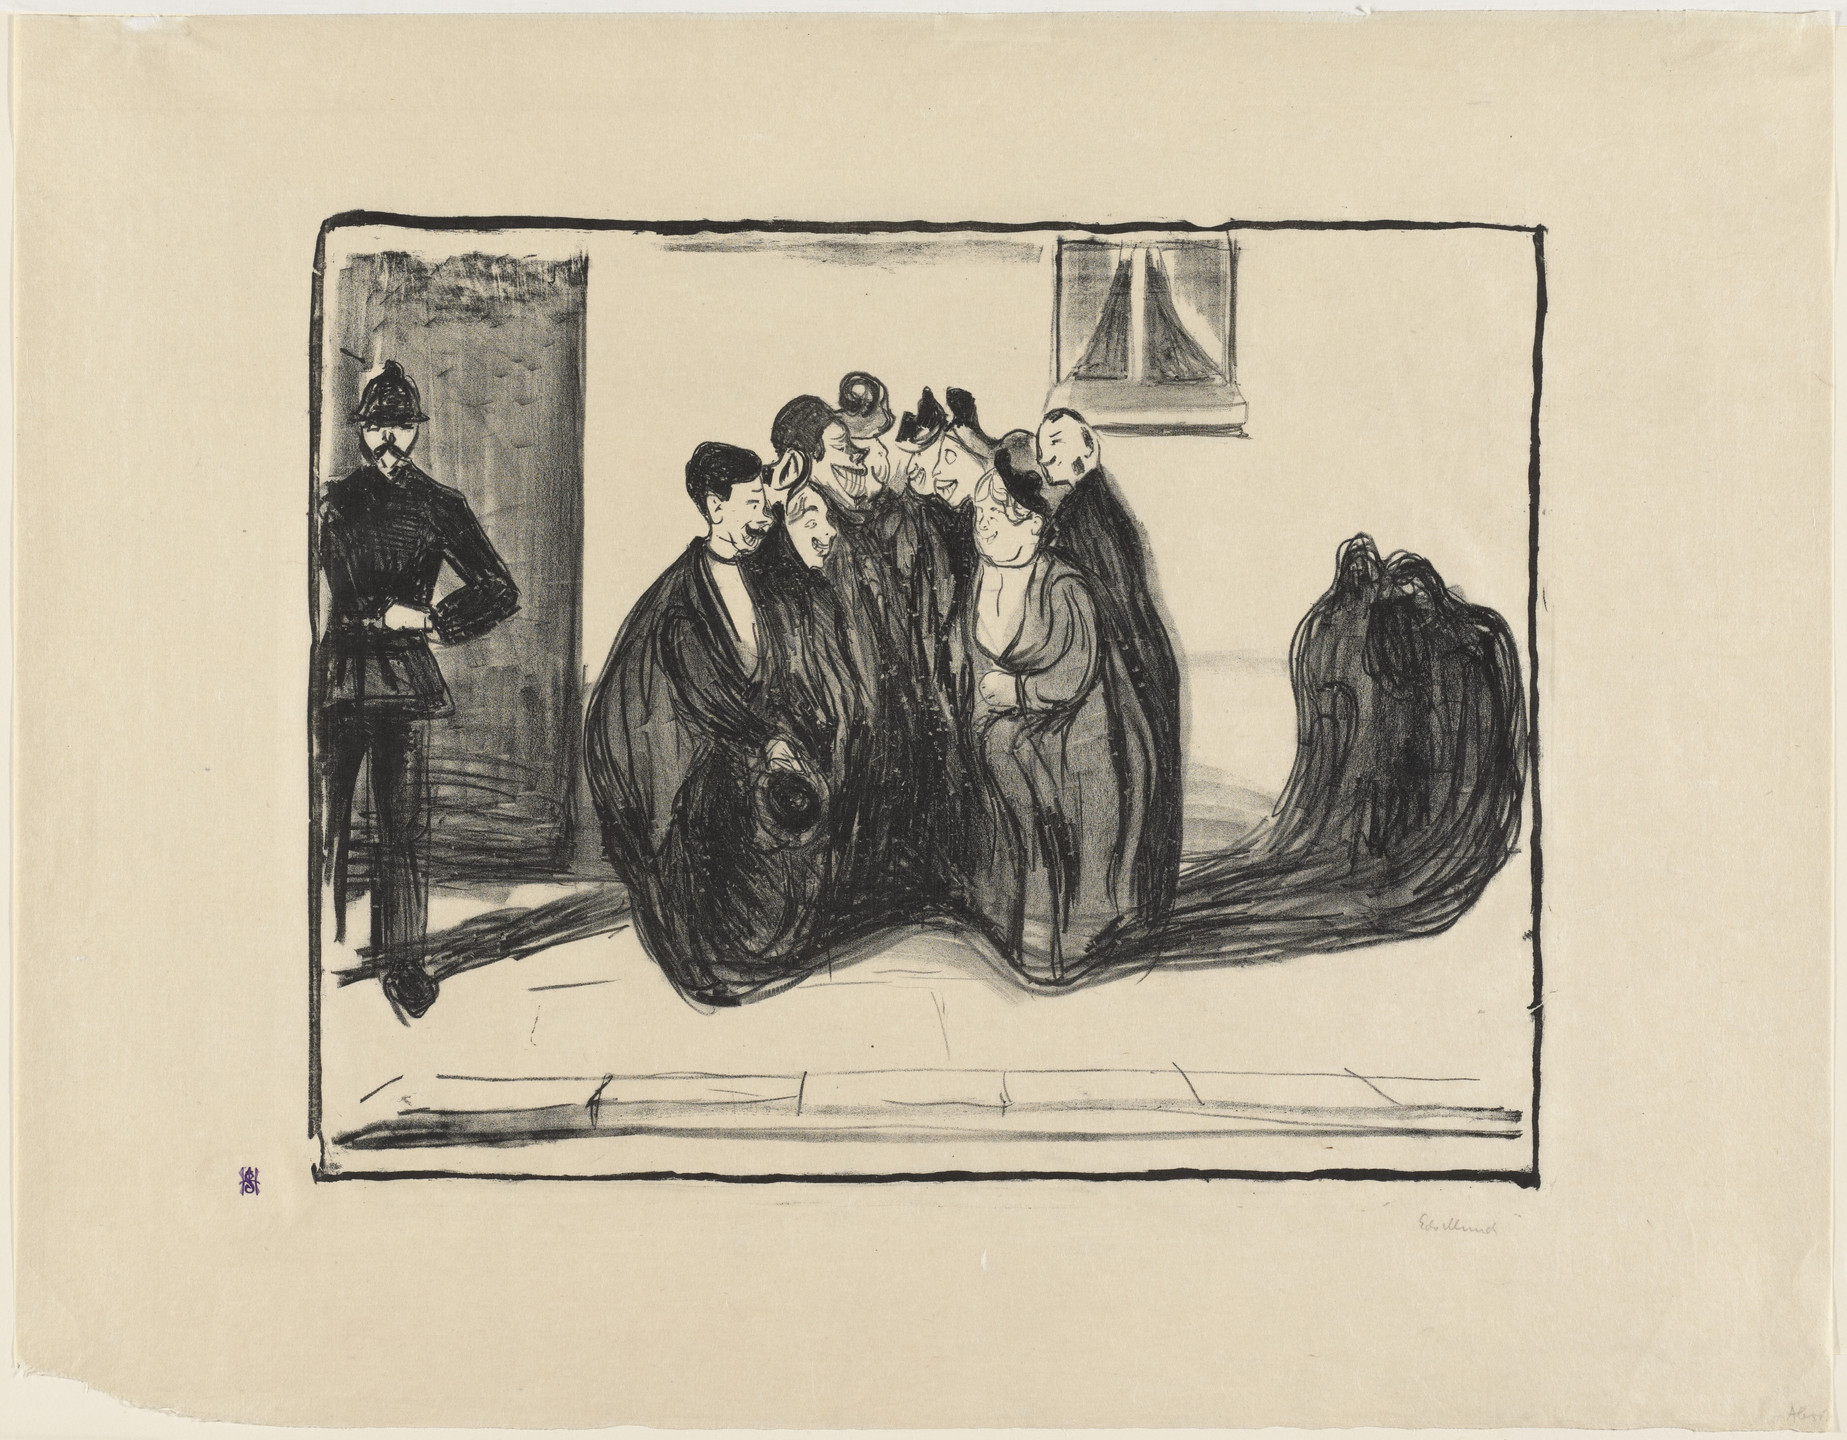 Edvard Munch. Thanking the Group. 1899